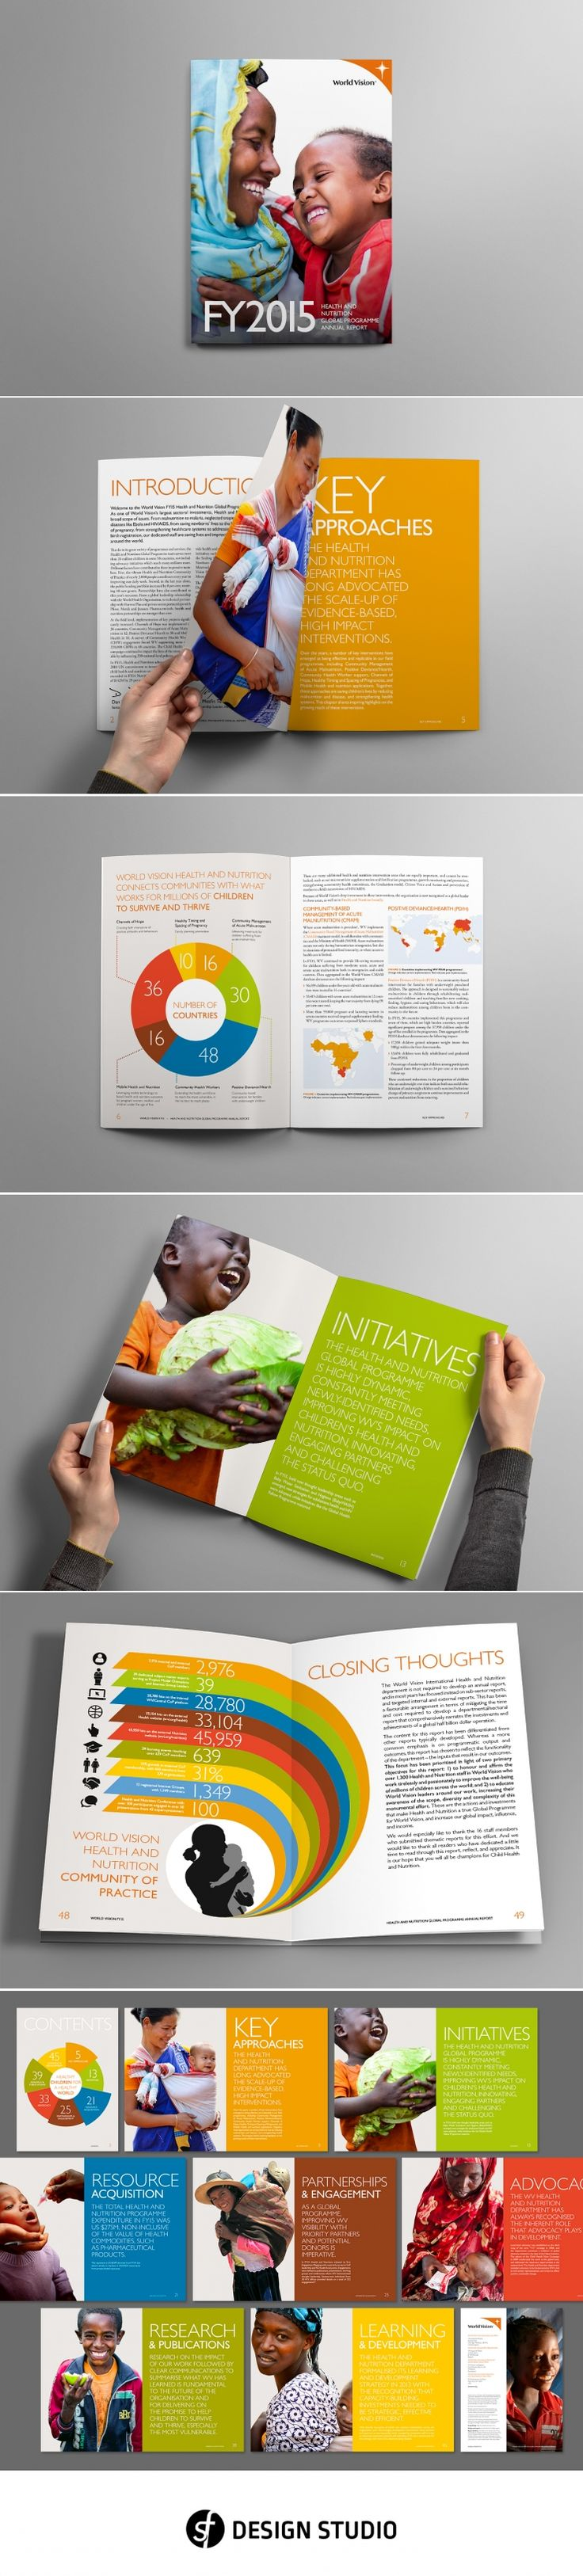 Design, layout and production of the World Vision 2015 Health and Nutrition Annual Report for the Ishimodo brand design agency. With a fairly open visual brief from the Ishimodo agency, SF Design Studio focused on the bold use of photography and colour, with a clean typographic style for the layout. Although the design was different and fresh, it still sat within the brand language already established for World Vision. - created via https://pinthemall.net